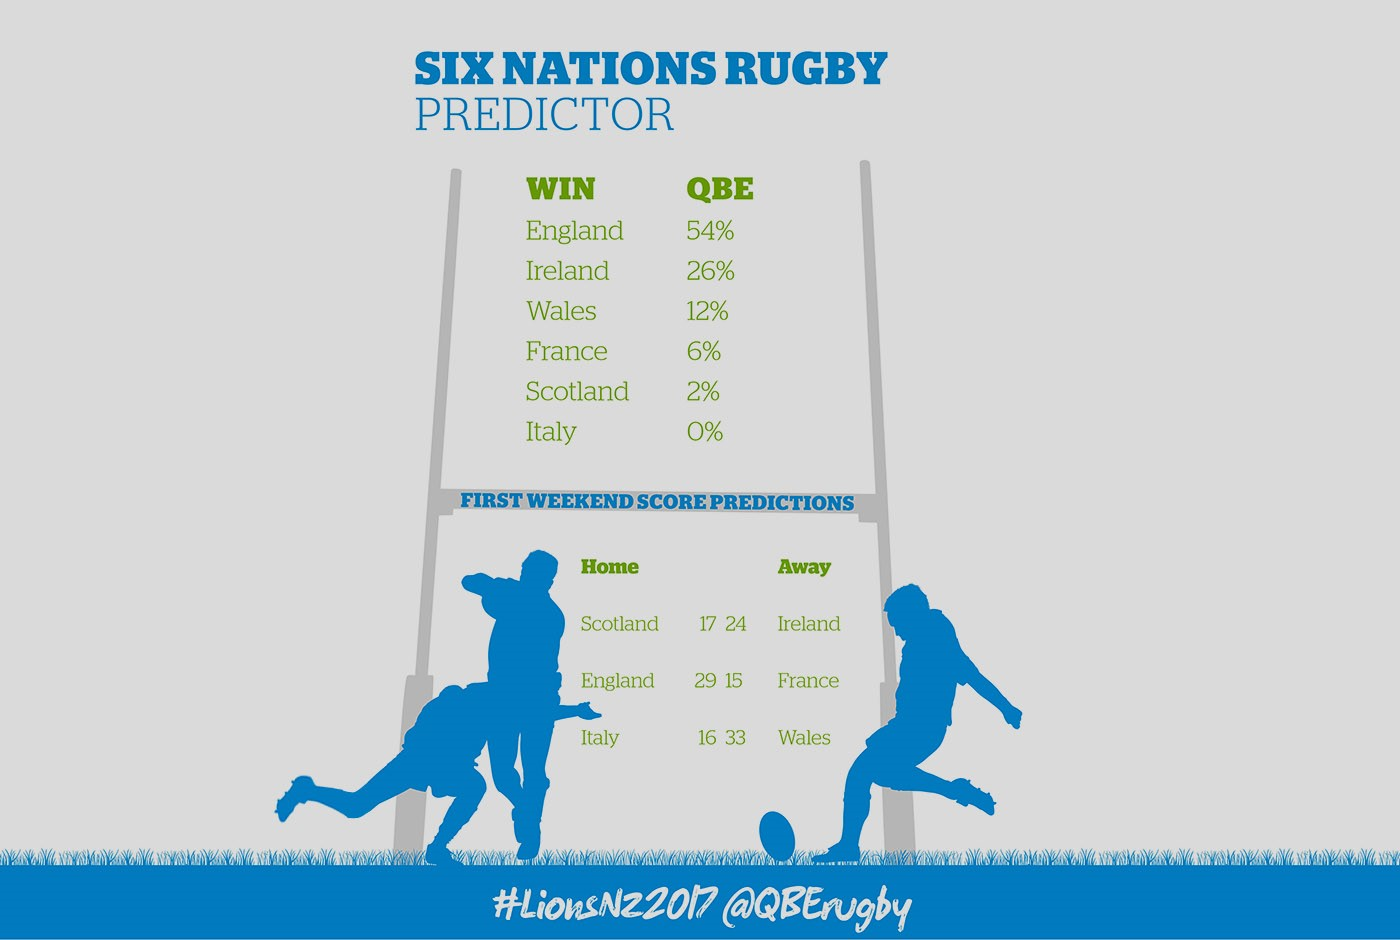 QBE calls the RBS 6 Nations for England